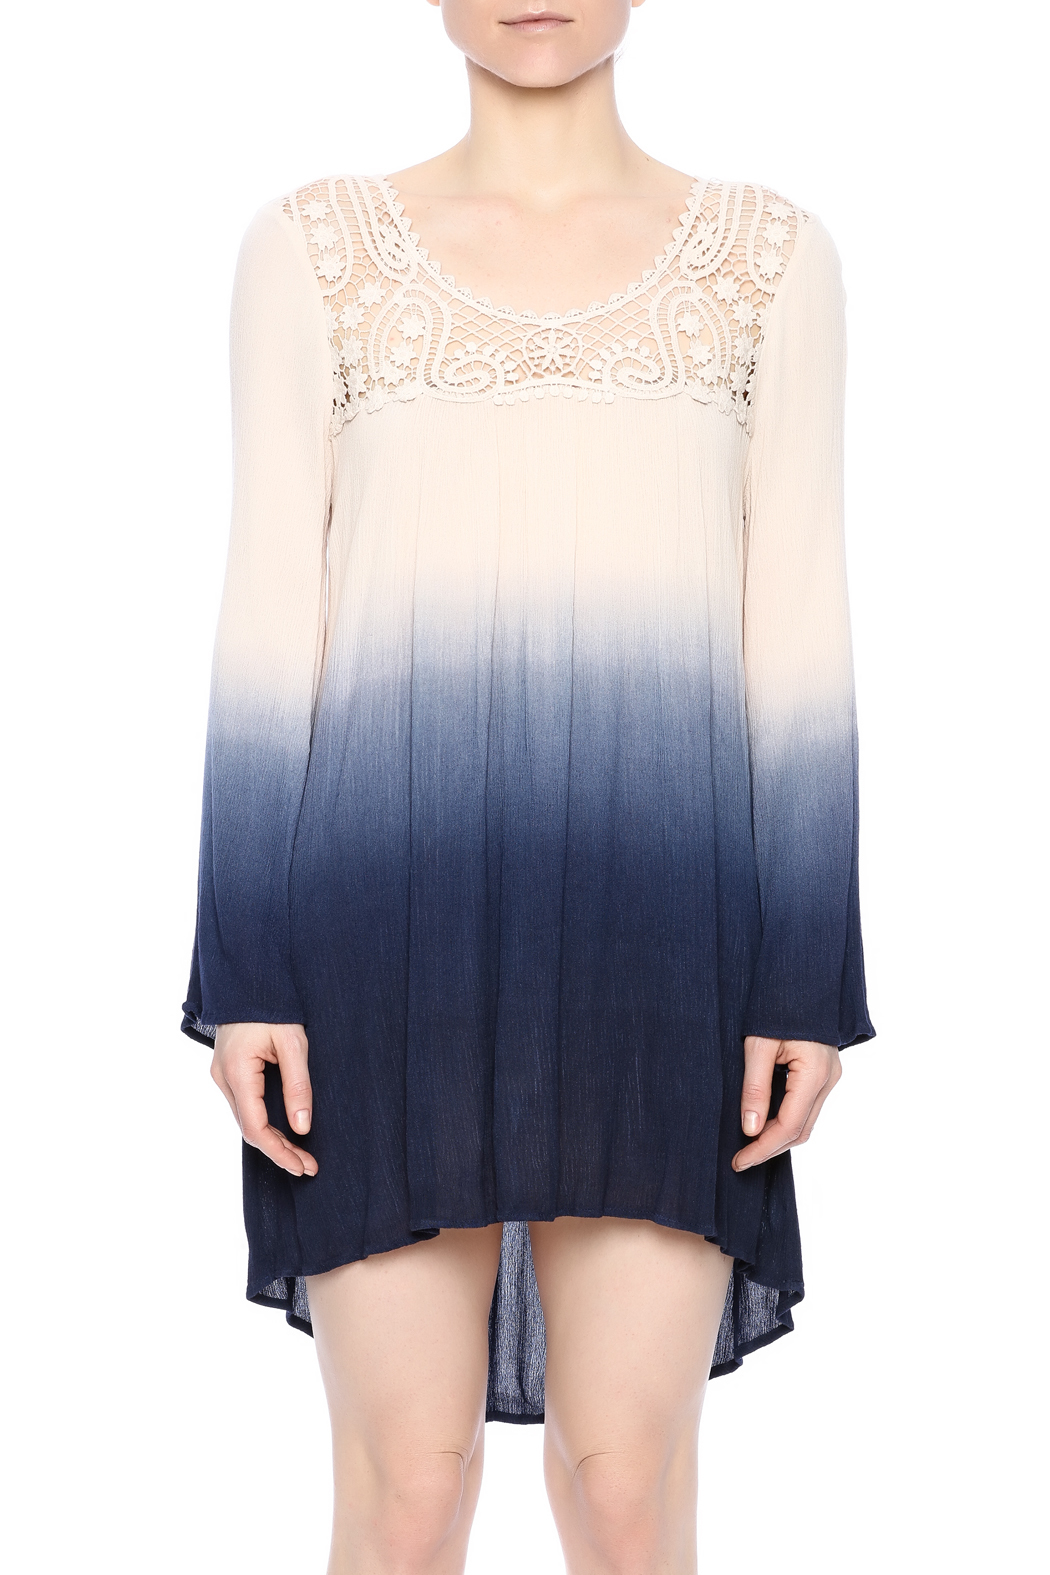 Blu Pepper Ombre Dress - Side Cropped Image